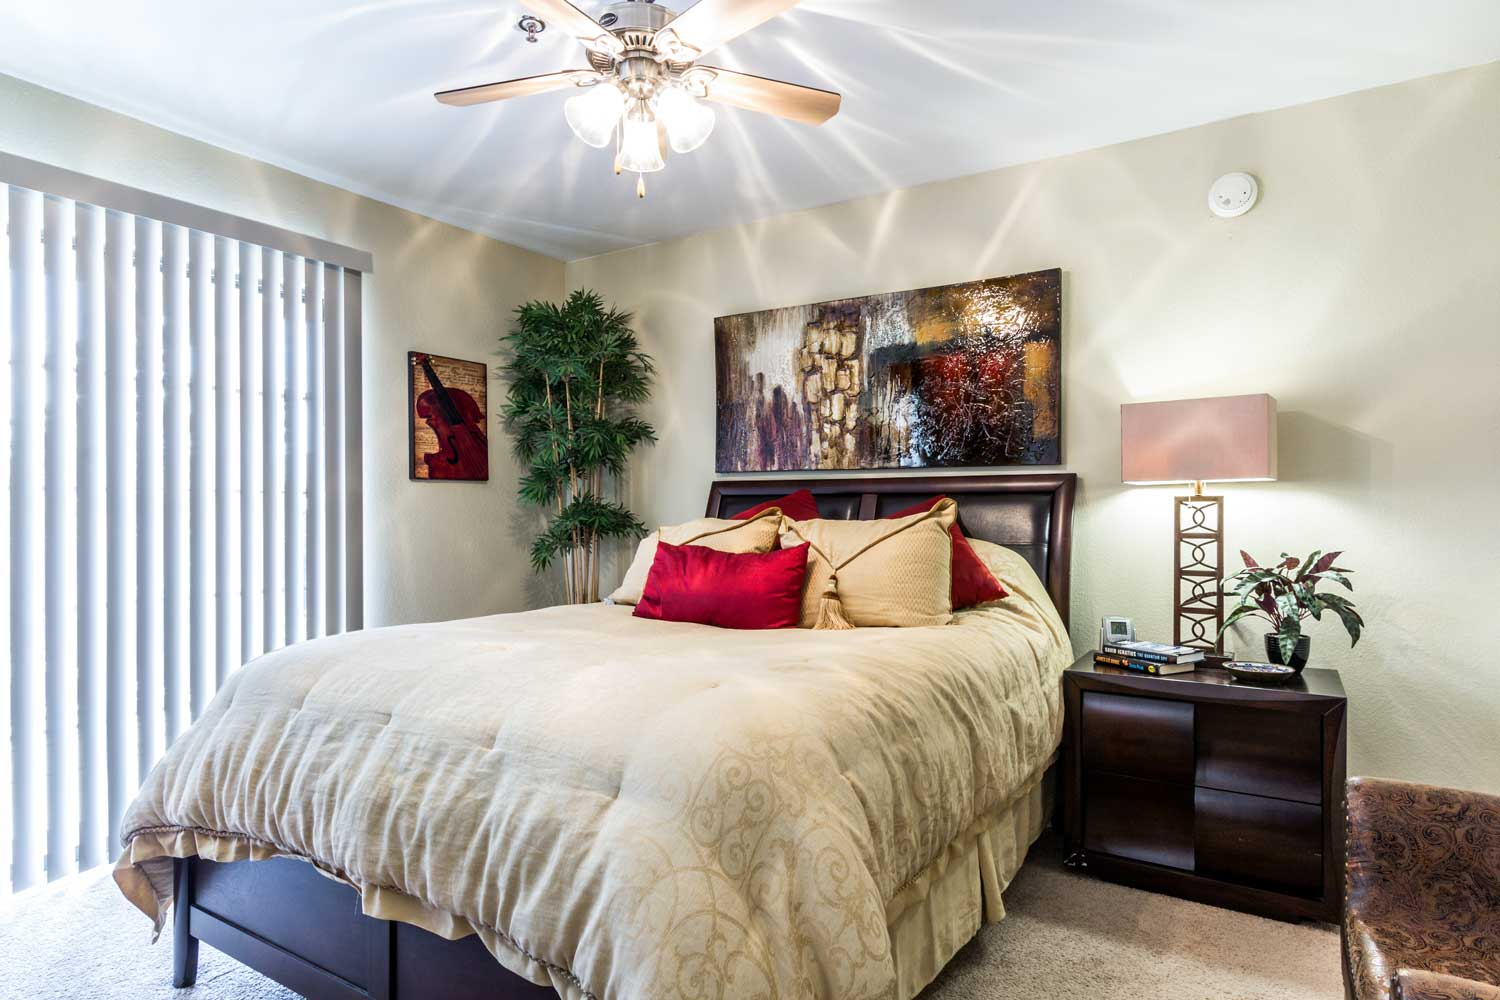 Cozy Bedroomsat Forest Hills Apartments in Dallas, TX